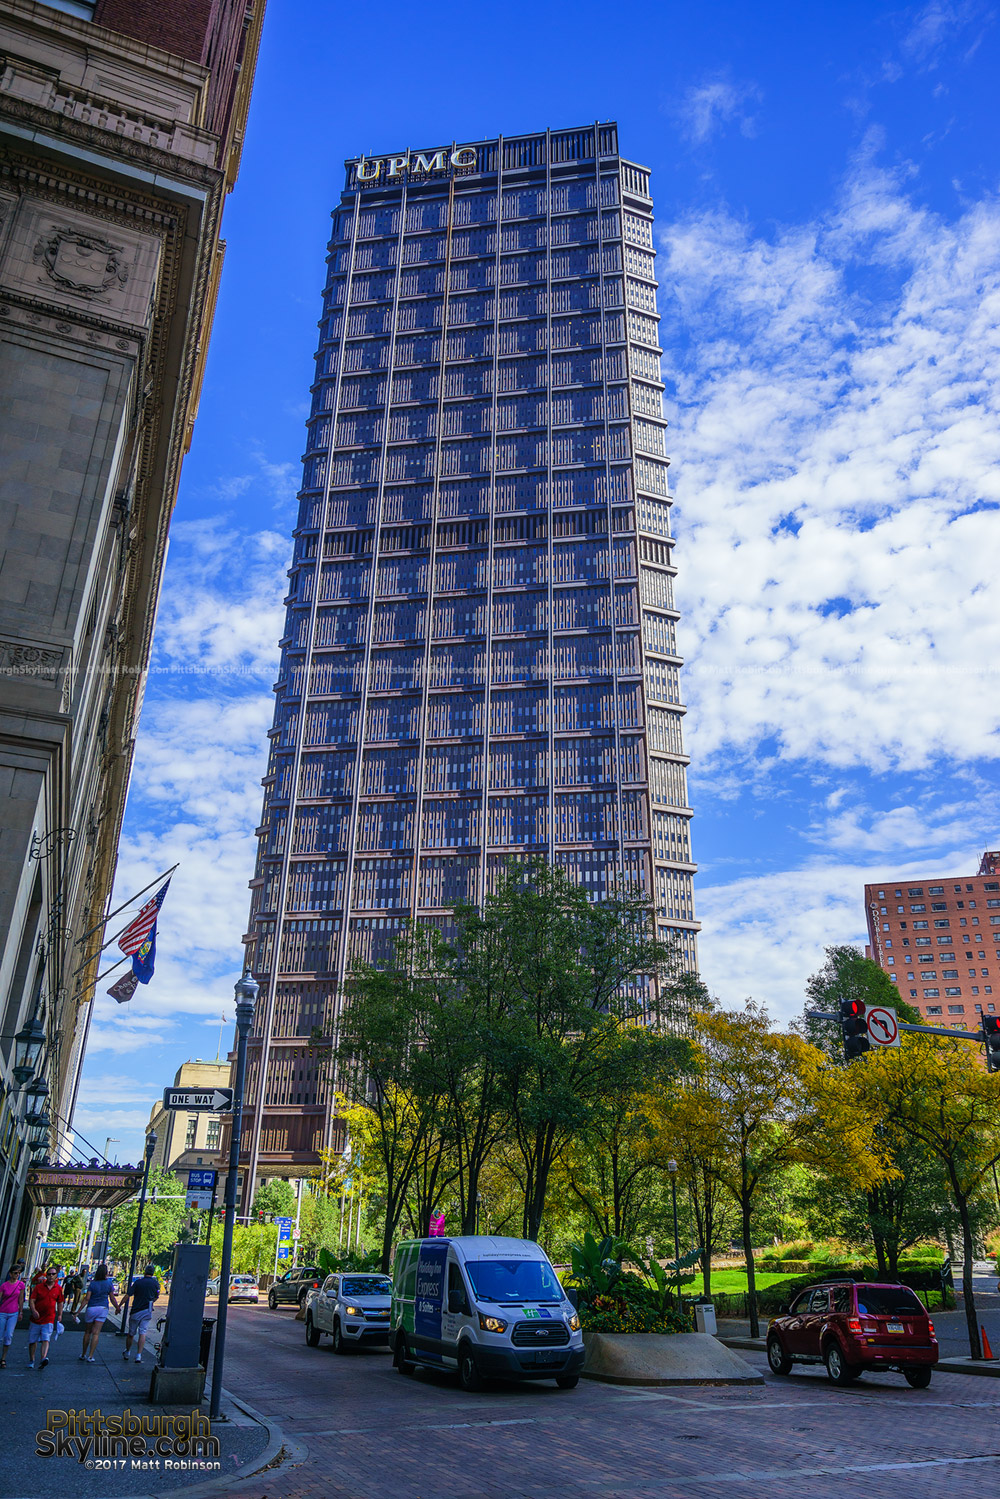 U.S. Steel Tower on Grant Street